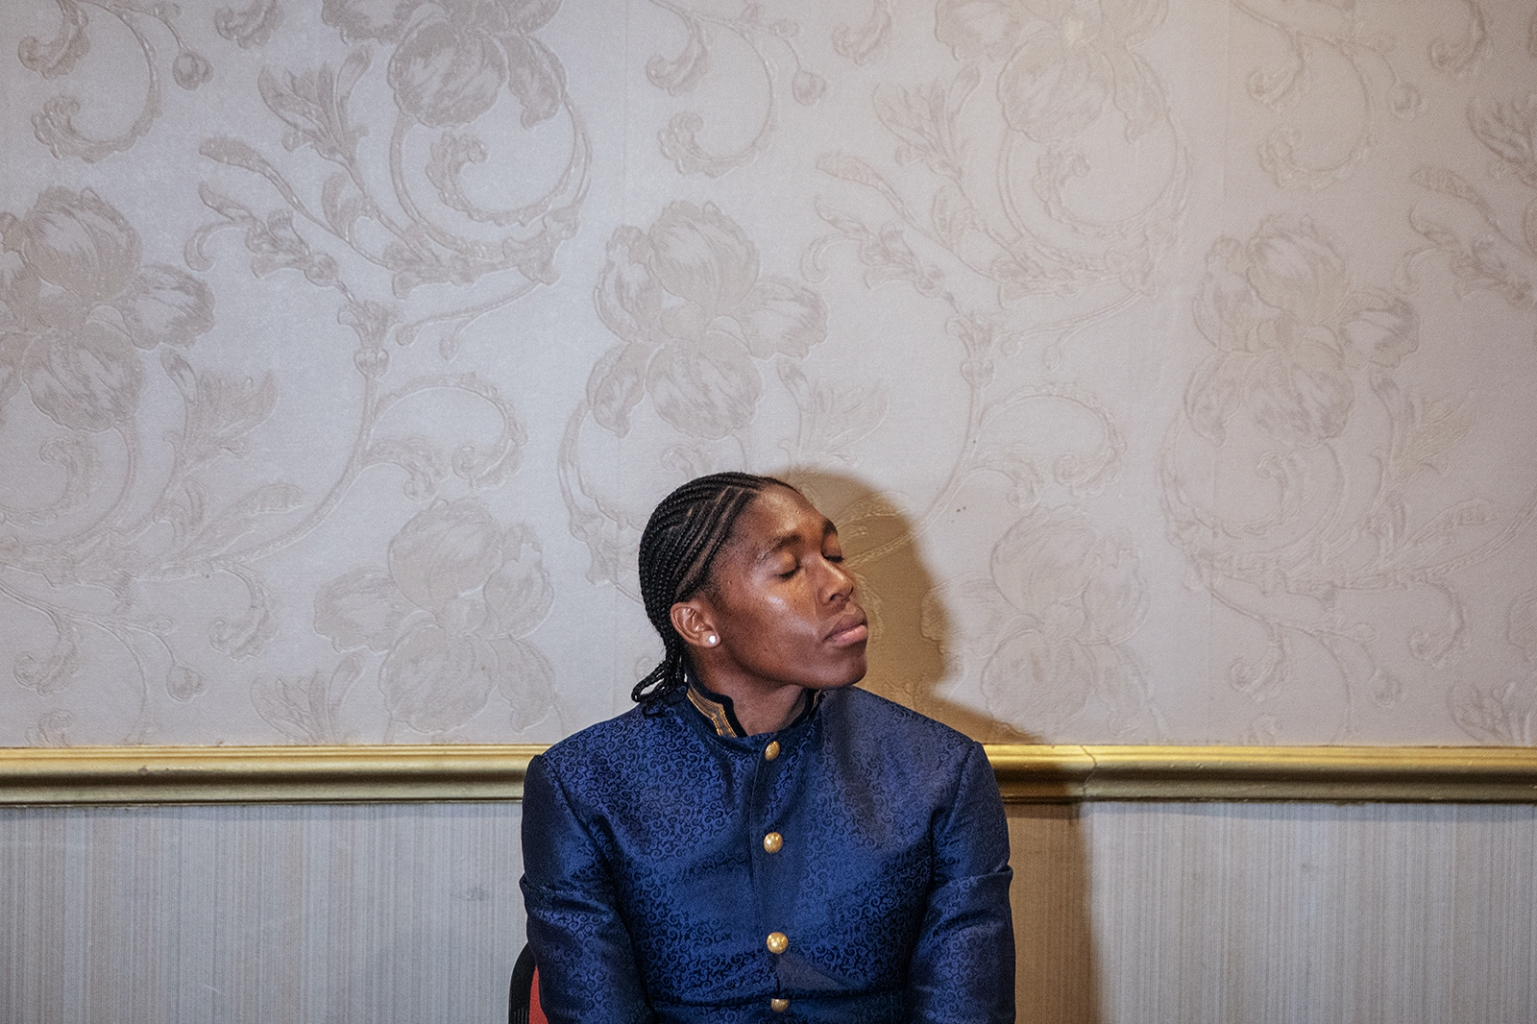 South African runner and Olympic champion Caster Semenya holds a news conference in Johannesburg, South Africa, to address a regulation that would make her take testosterone-lowering medication on Aug. 14. MICHELE SPATARI/AFP/Getty Images